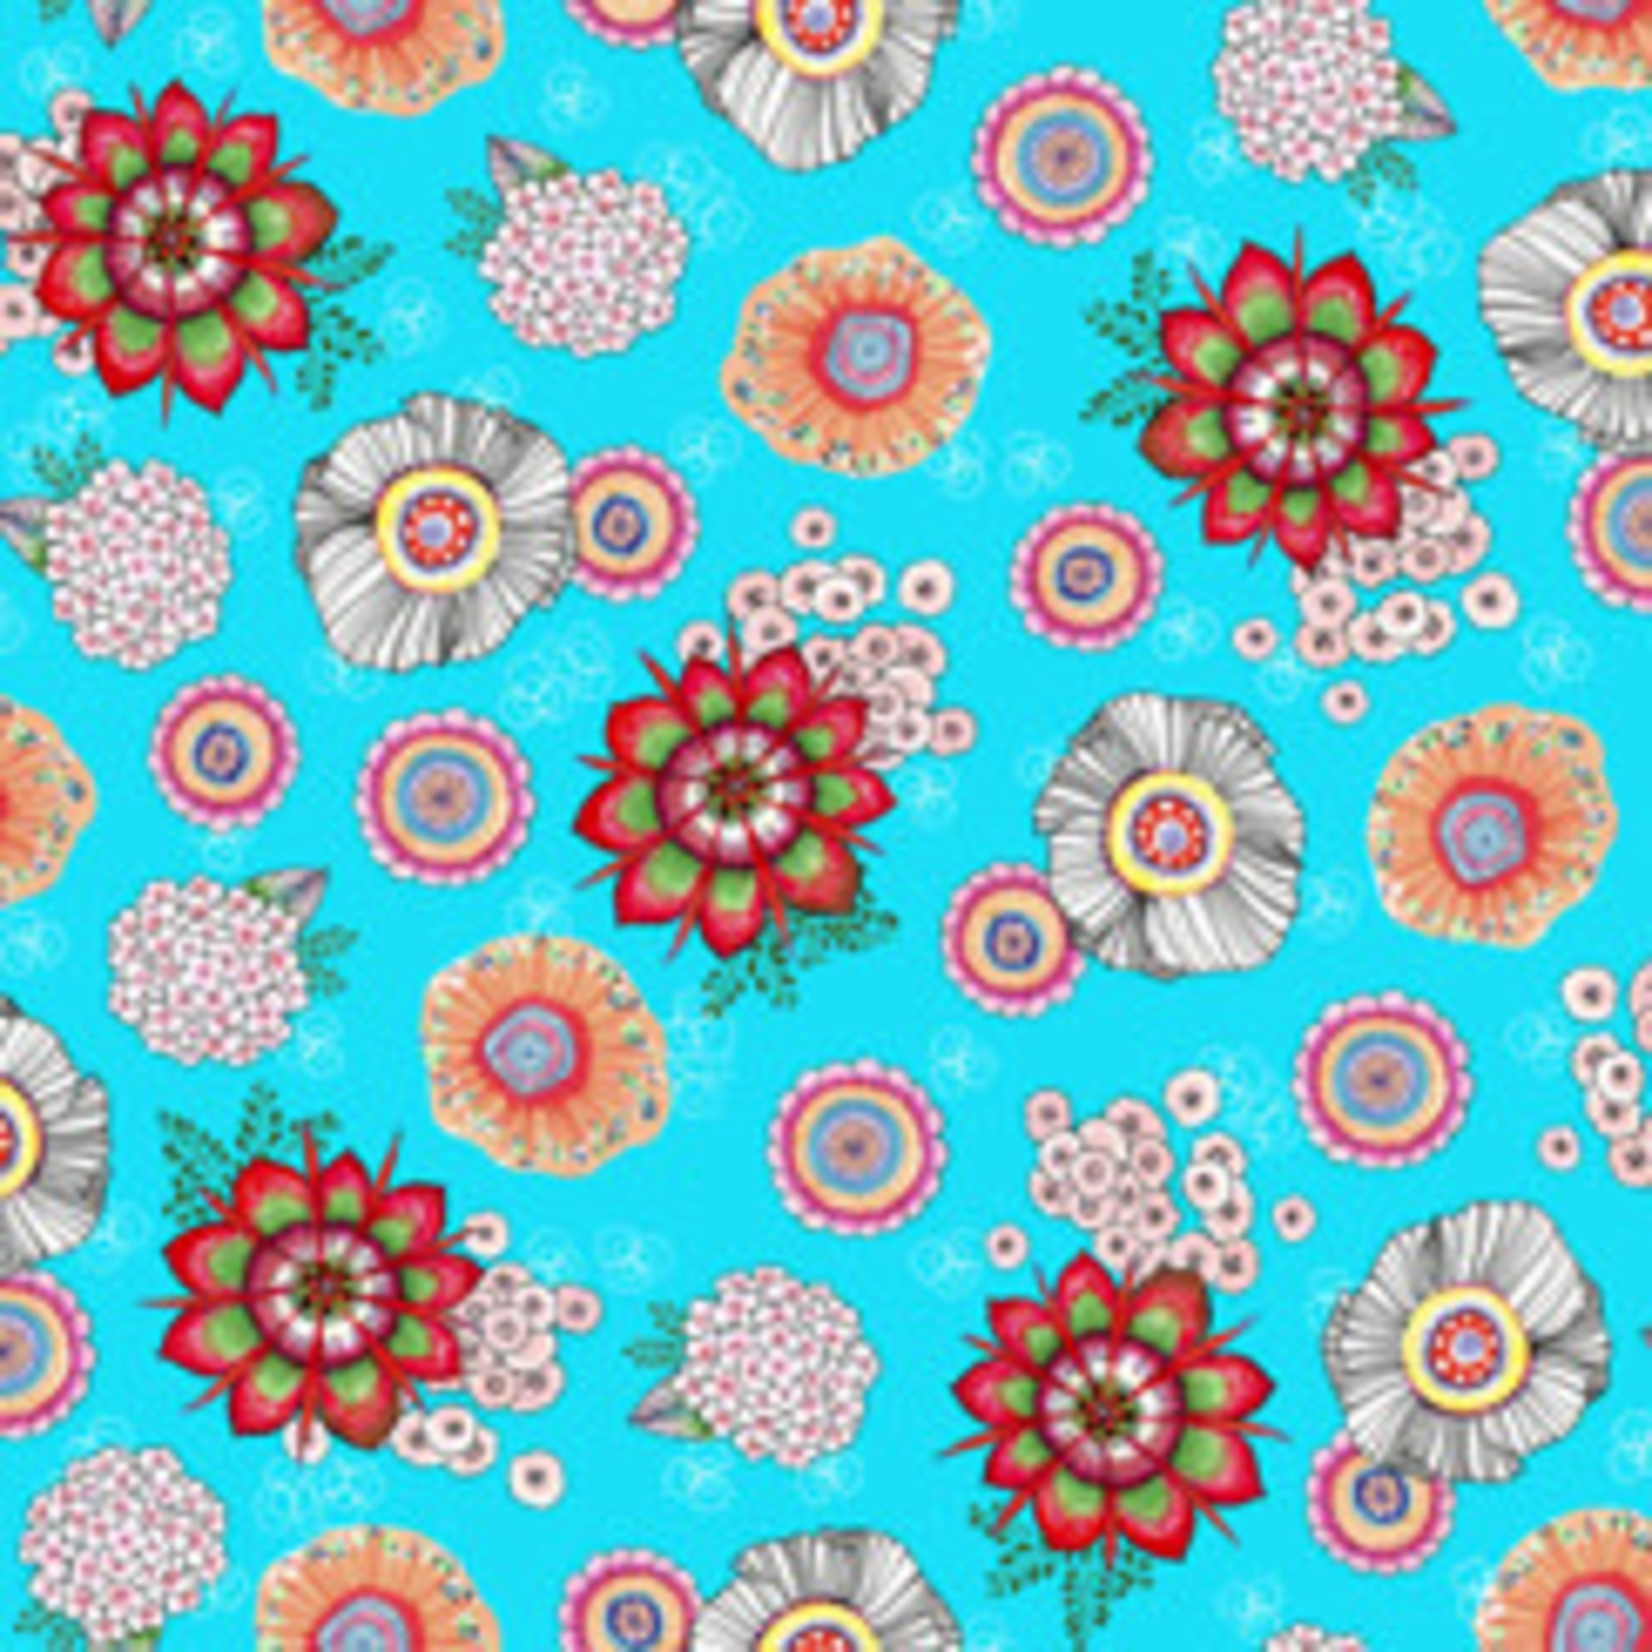 QT Fabrics Mika - Tossed Floral - Turquoise